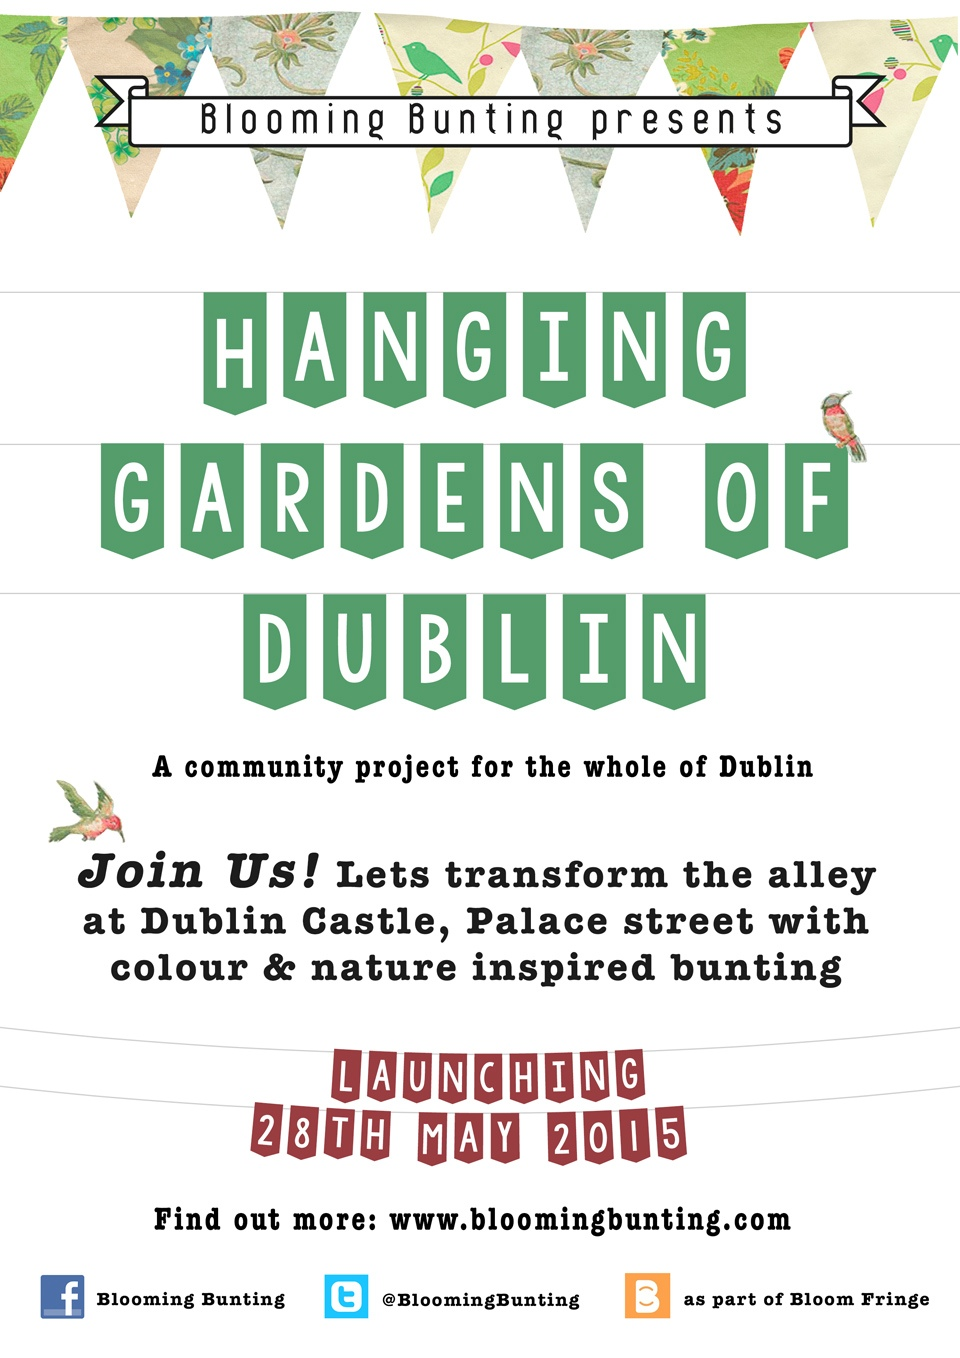 The Hanging Gardens of Dublin_poster